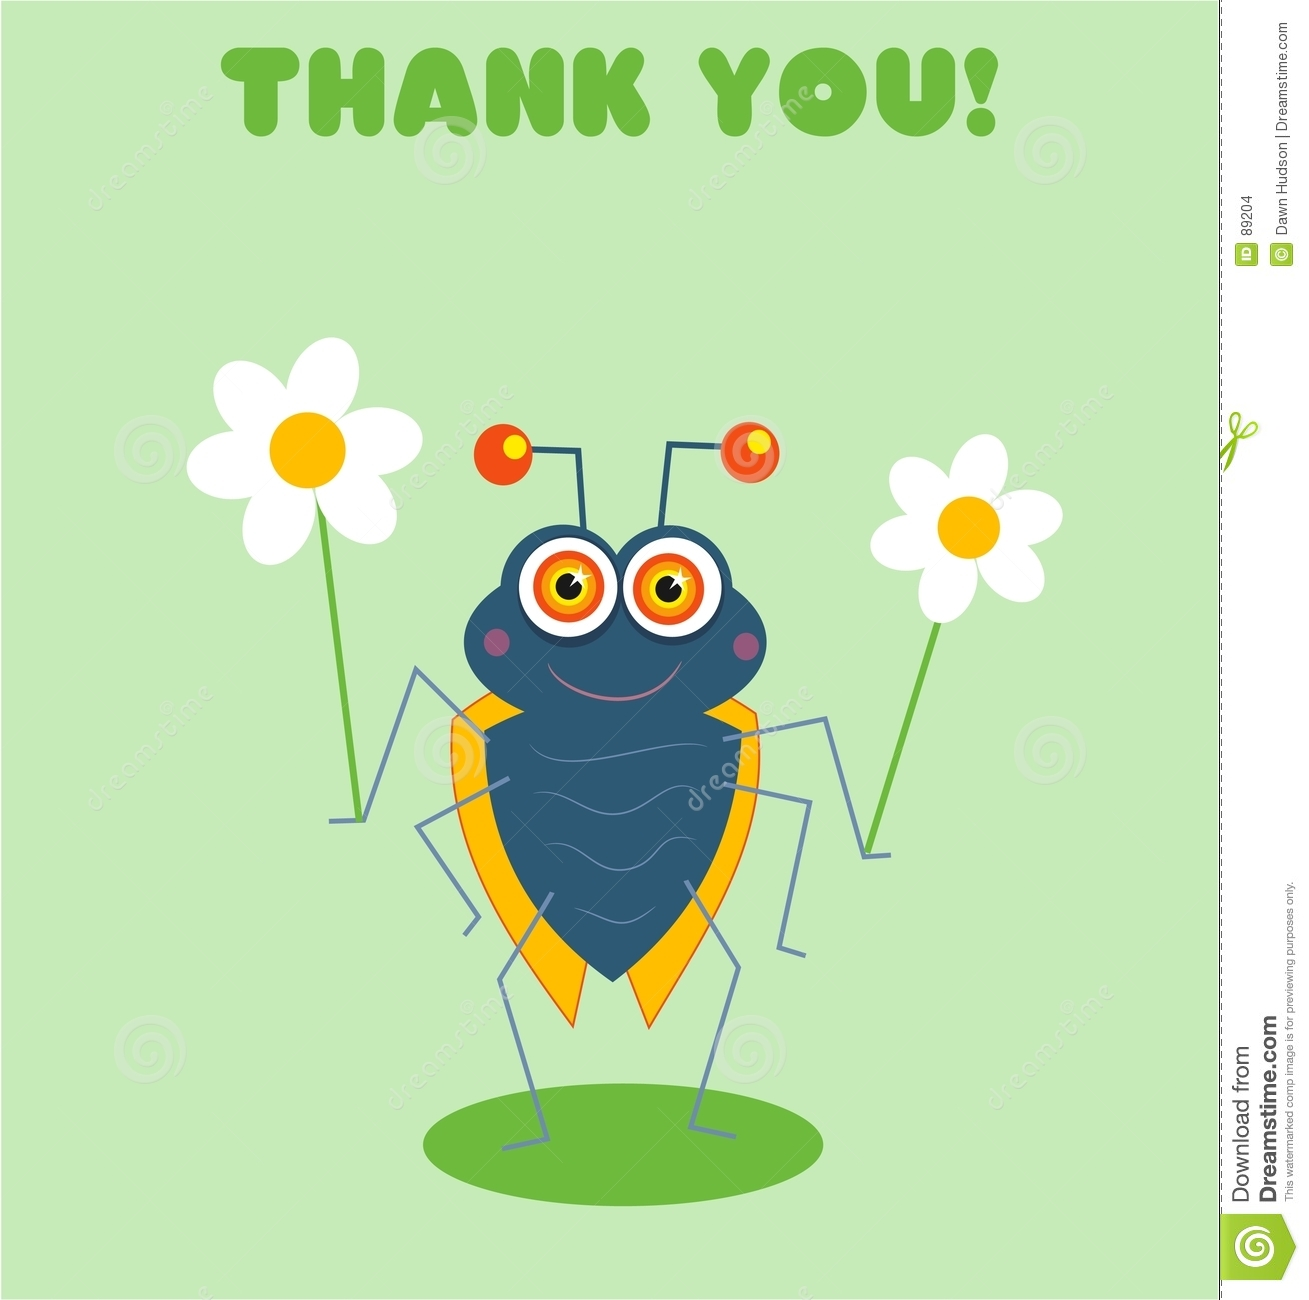 Thank you from bugsy - checkout the rest of the Bugsy geeting card ...